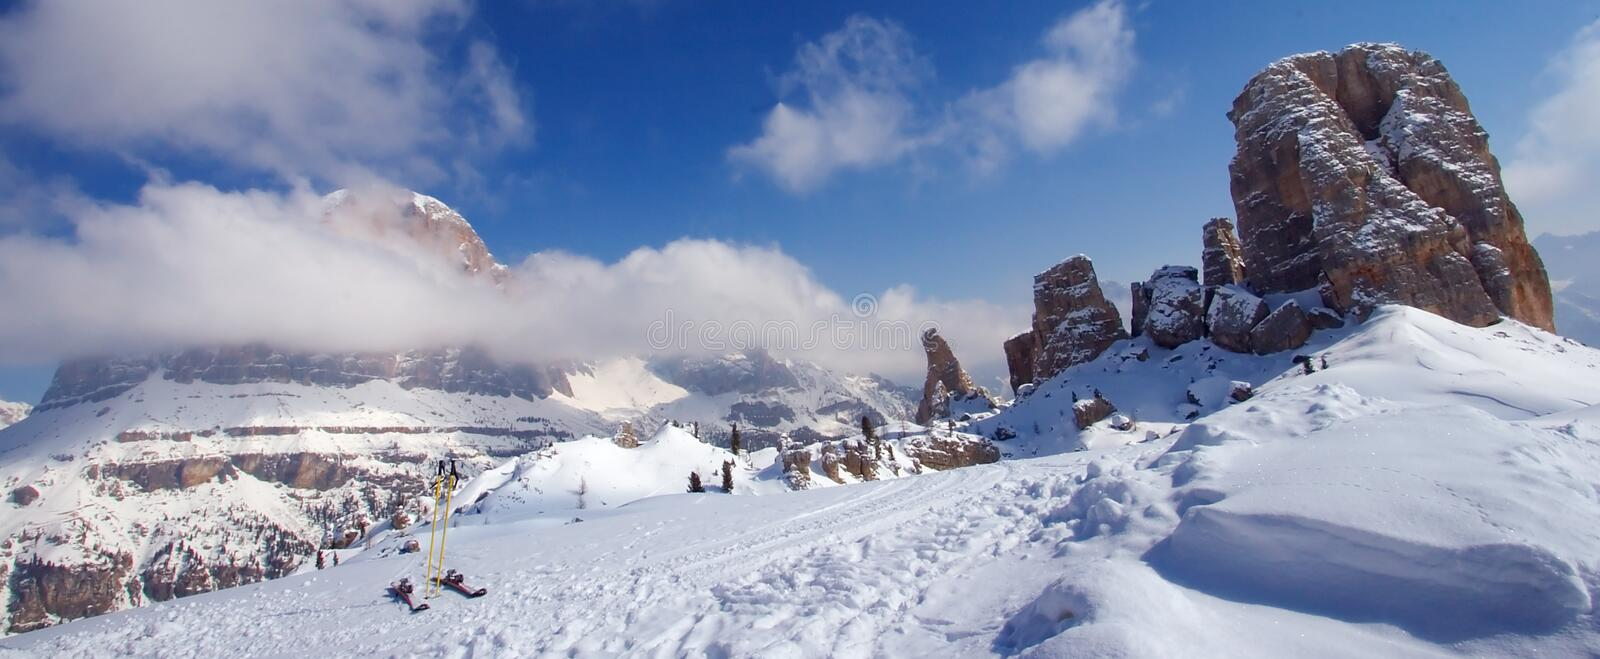 Dolomites Skiing Adventure royalty free stock photo